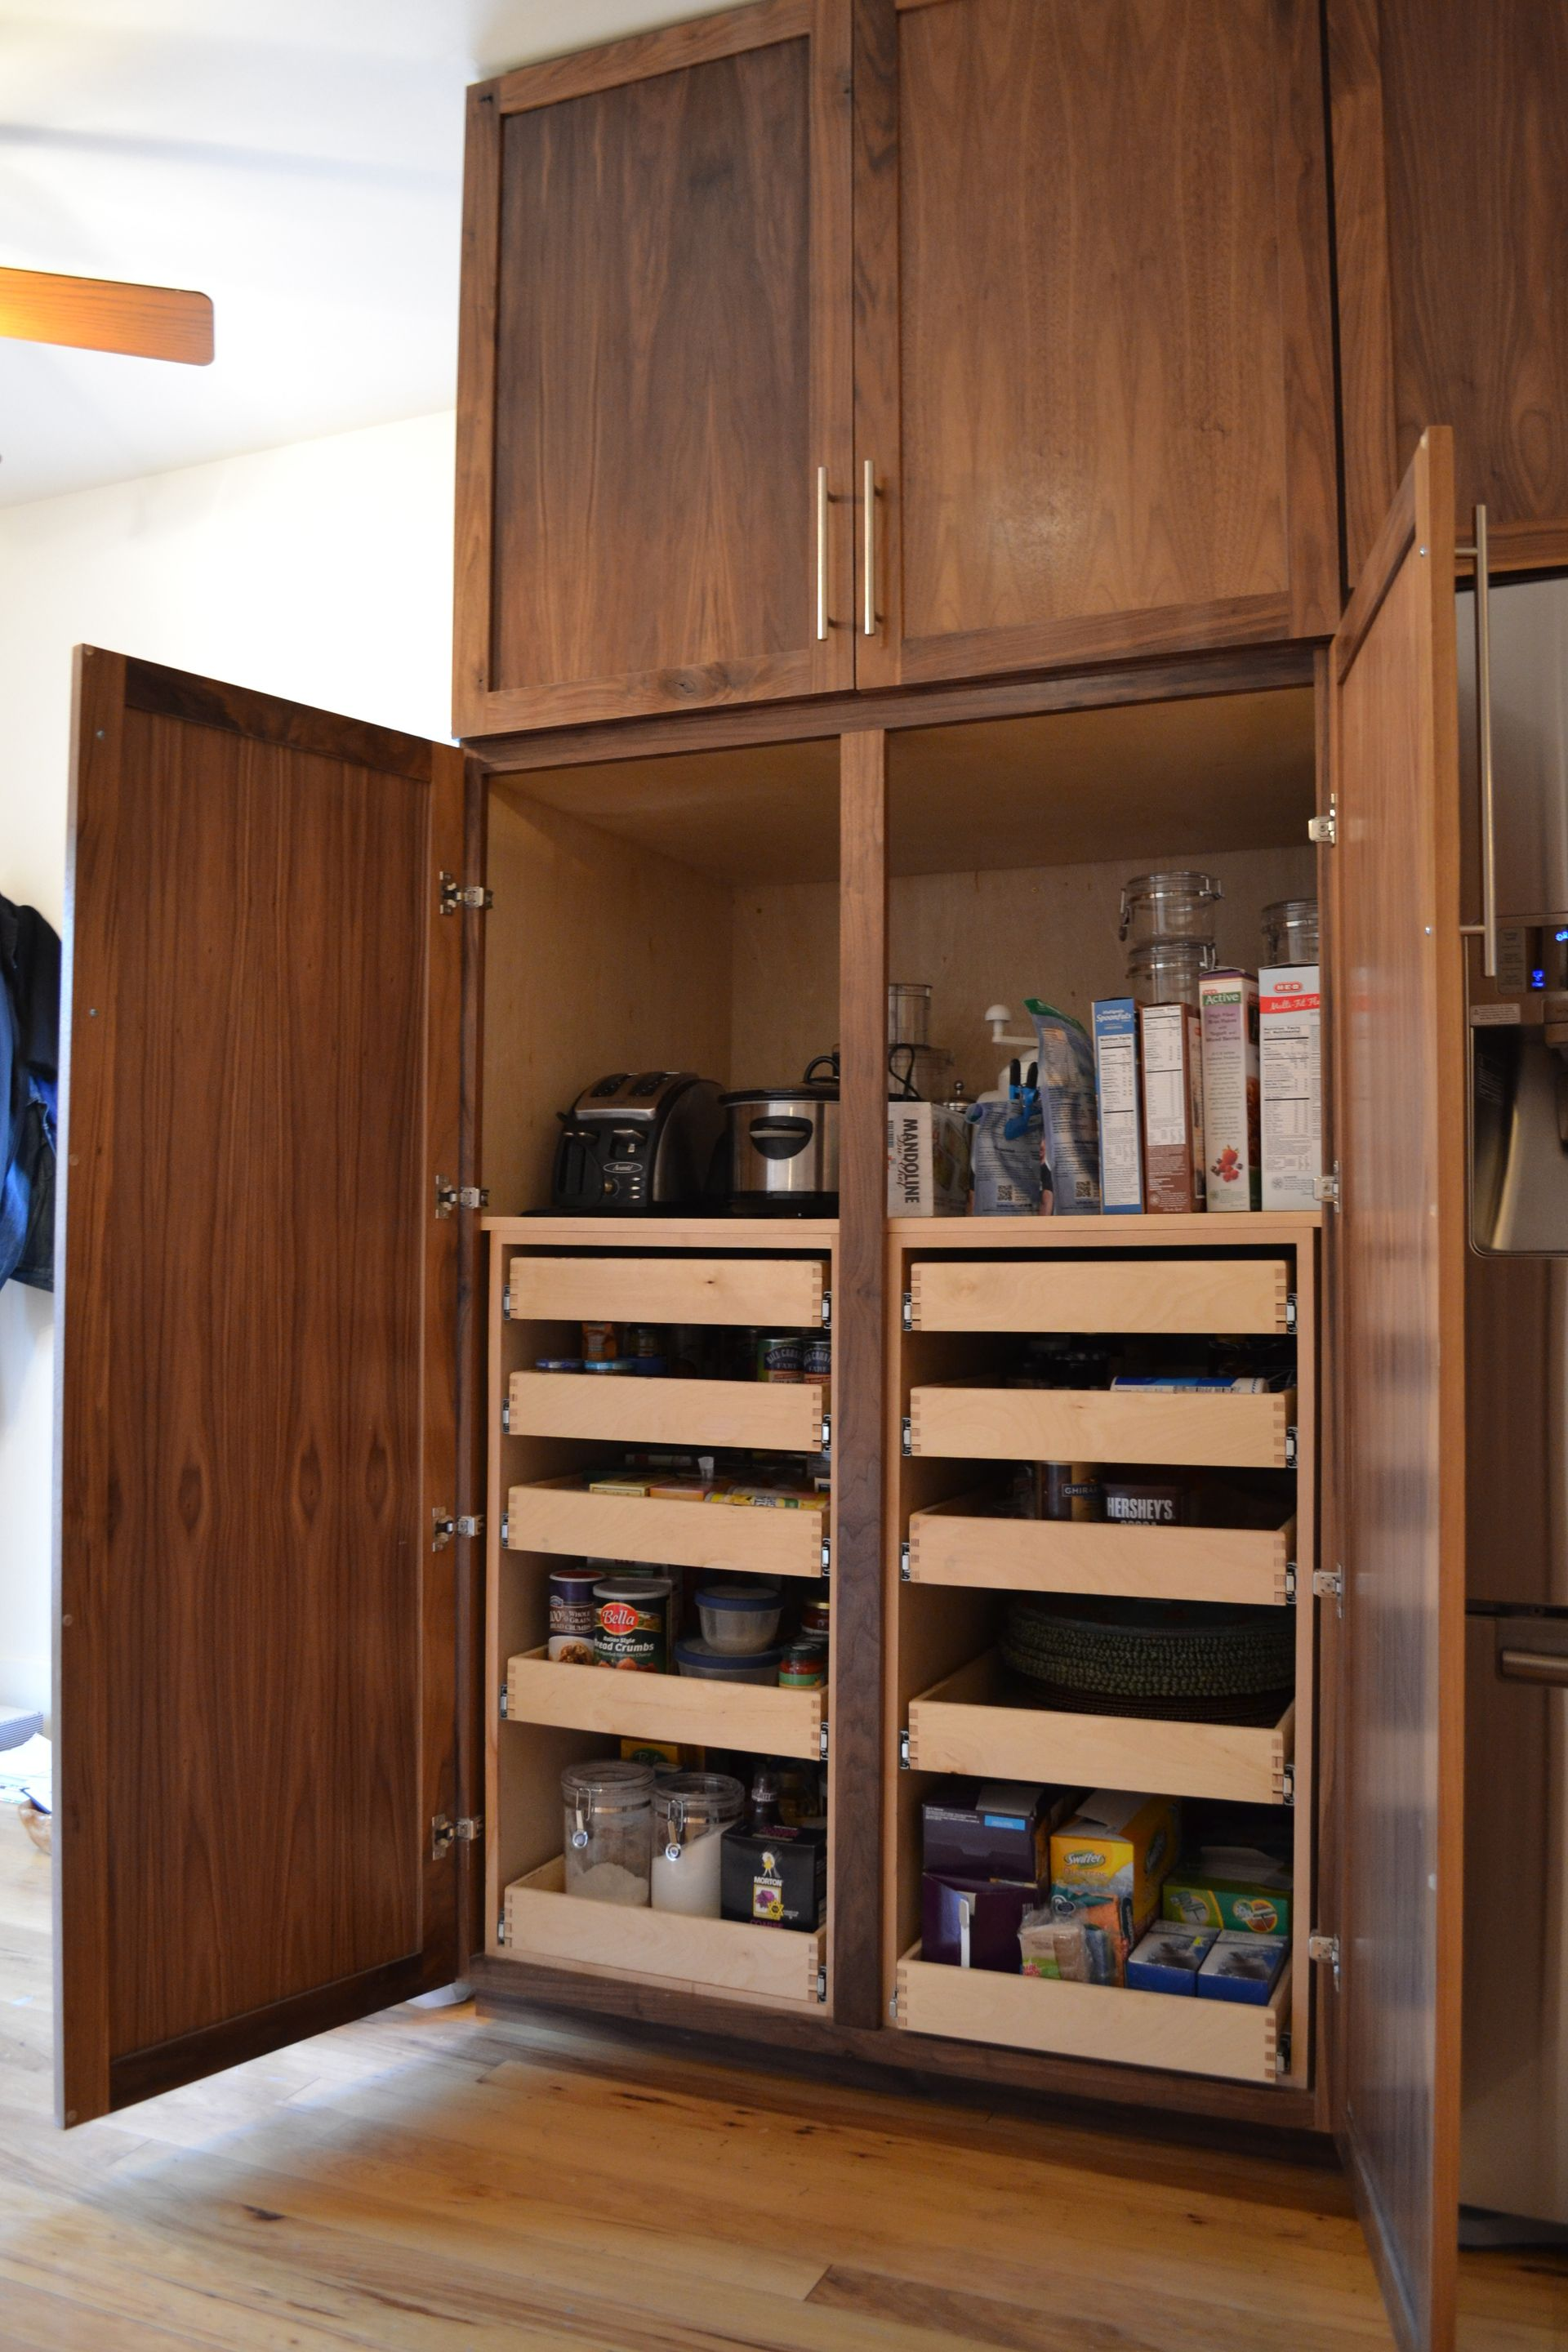 Gallery Kitchen Cabinets In Bathroom Custom Kitchen Cabinets Custom Cabinets